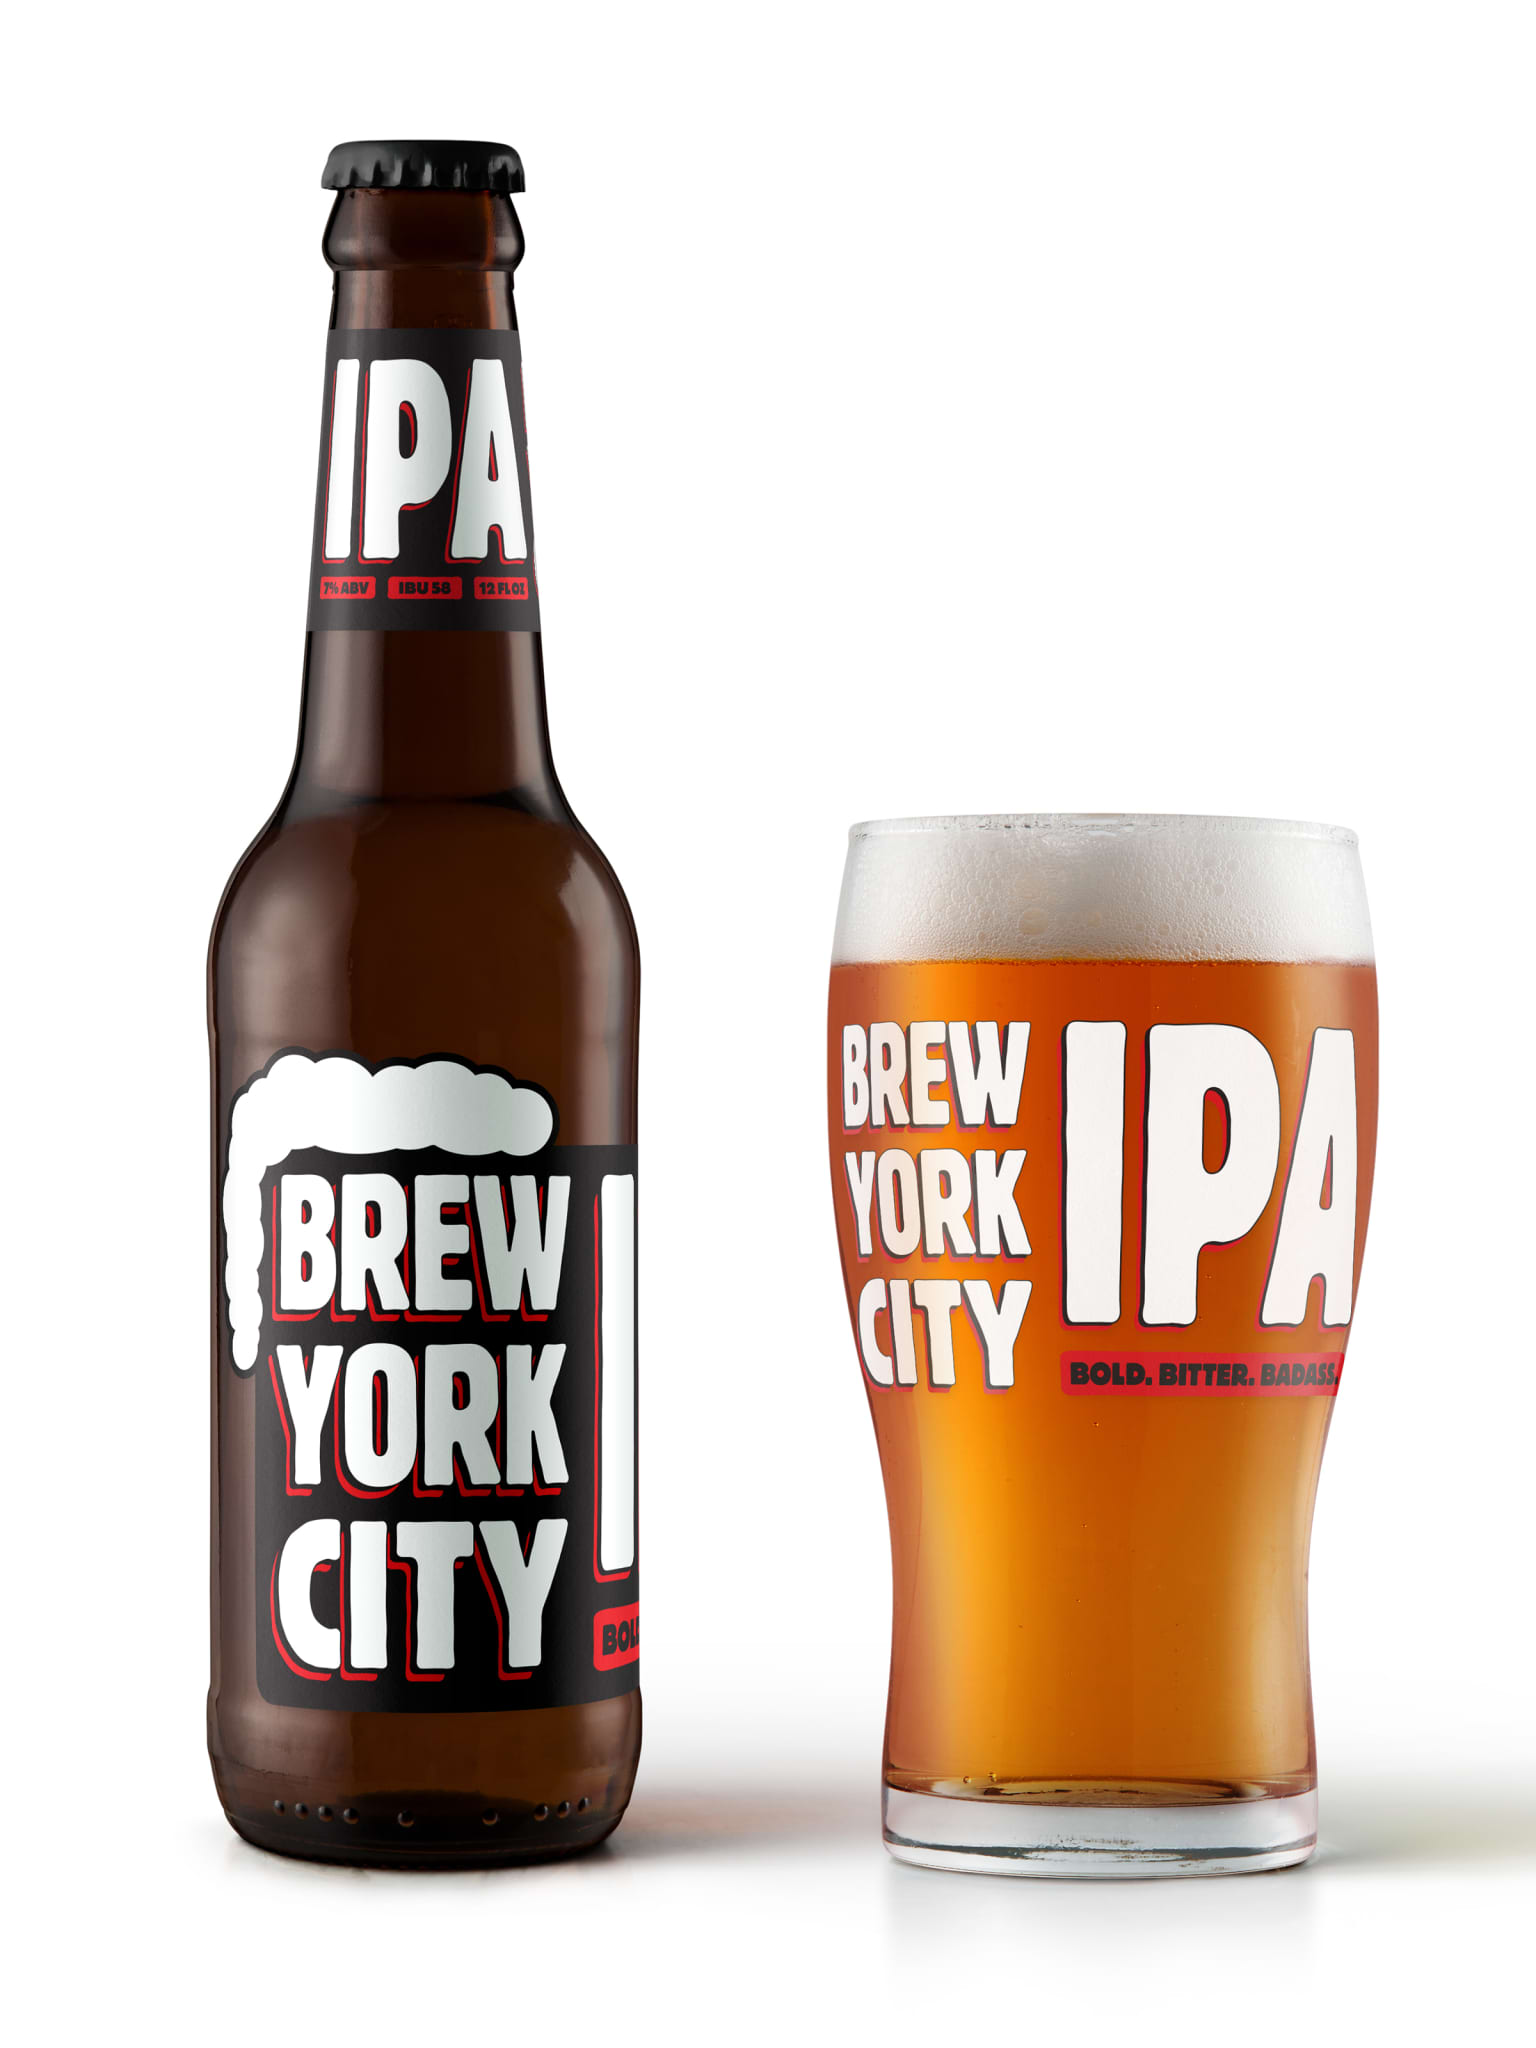 Brew York City beer: Identity | Branding | Packaging